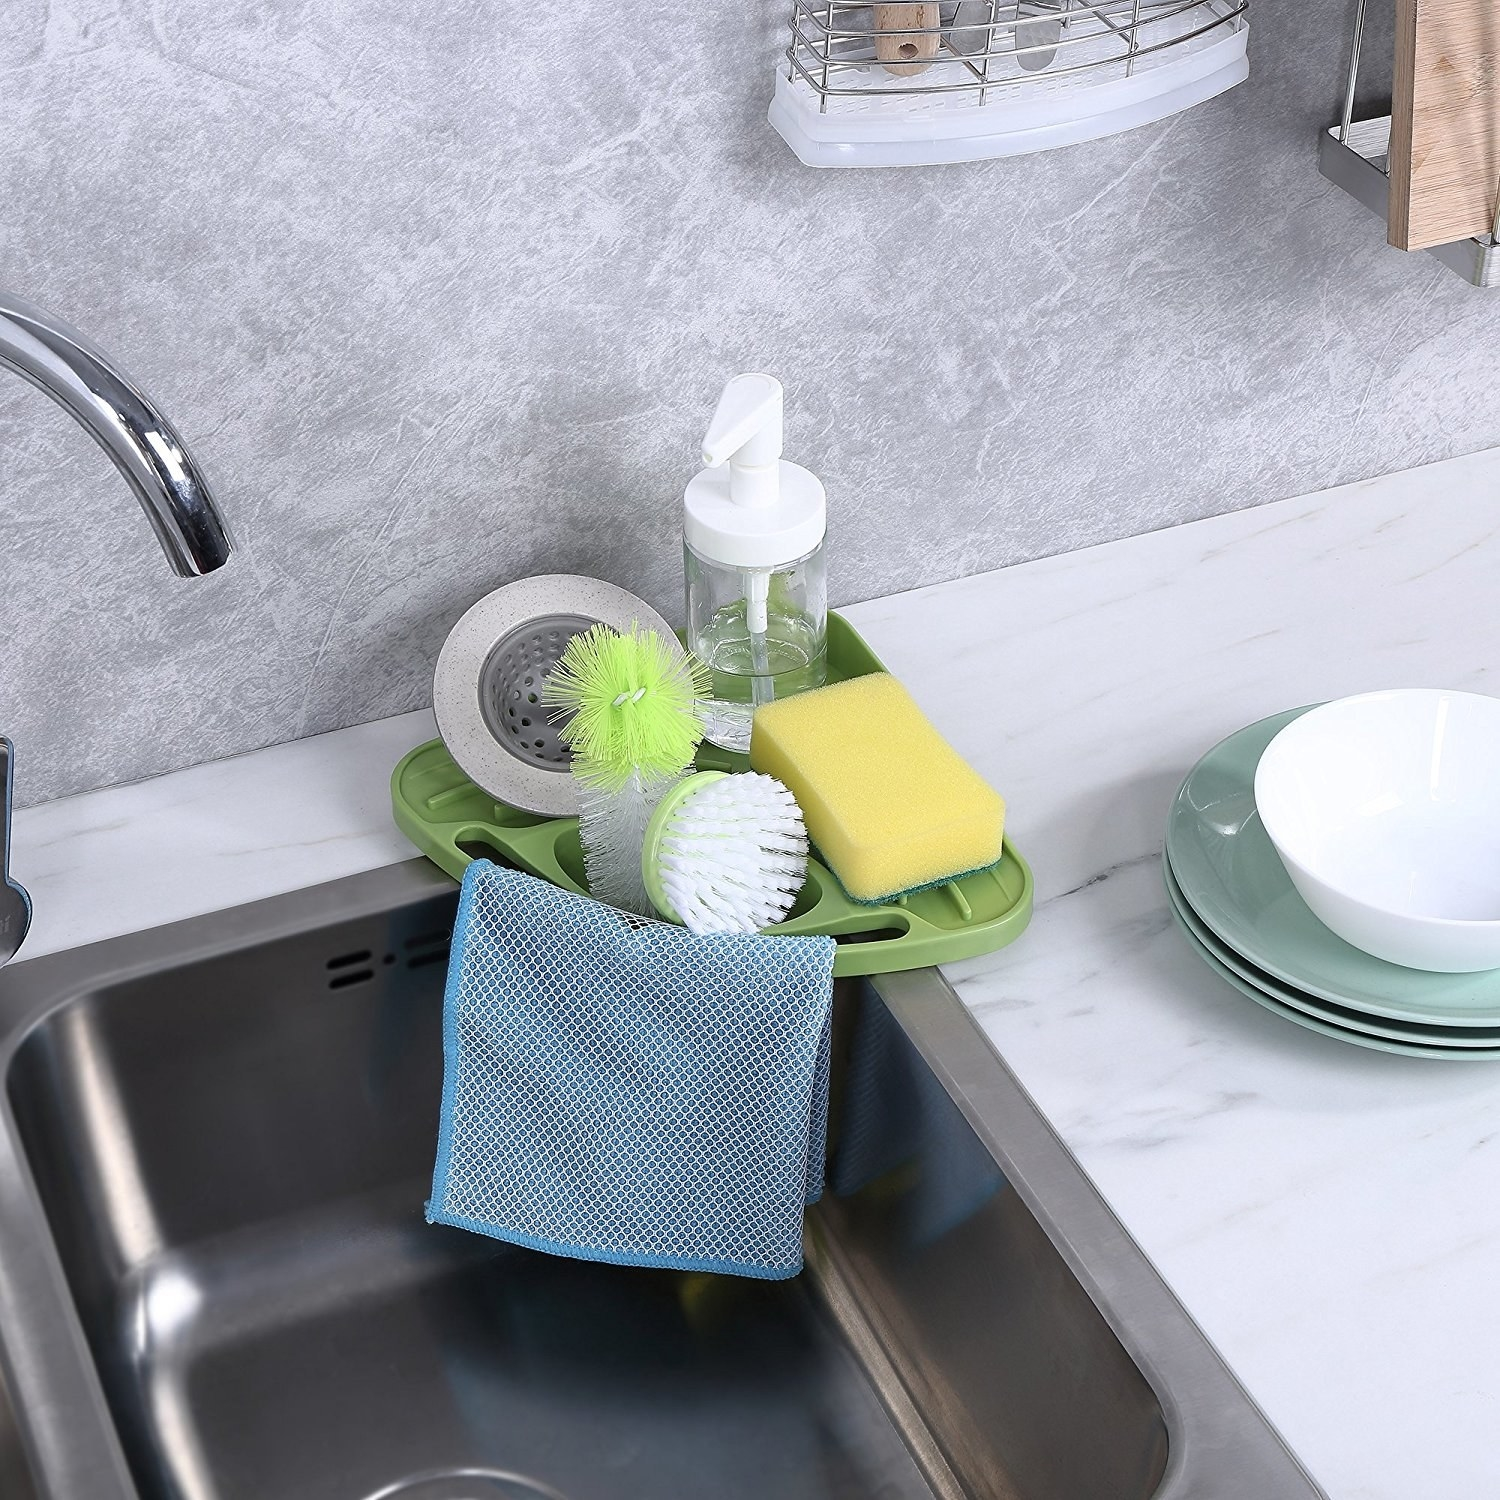 kitchen sink with triangle shaped sponge and soap holder on the corner of a sink